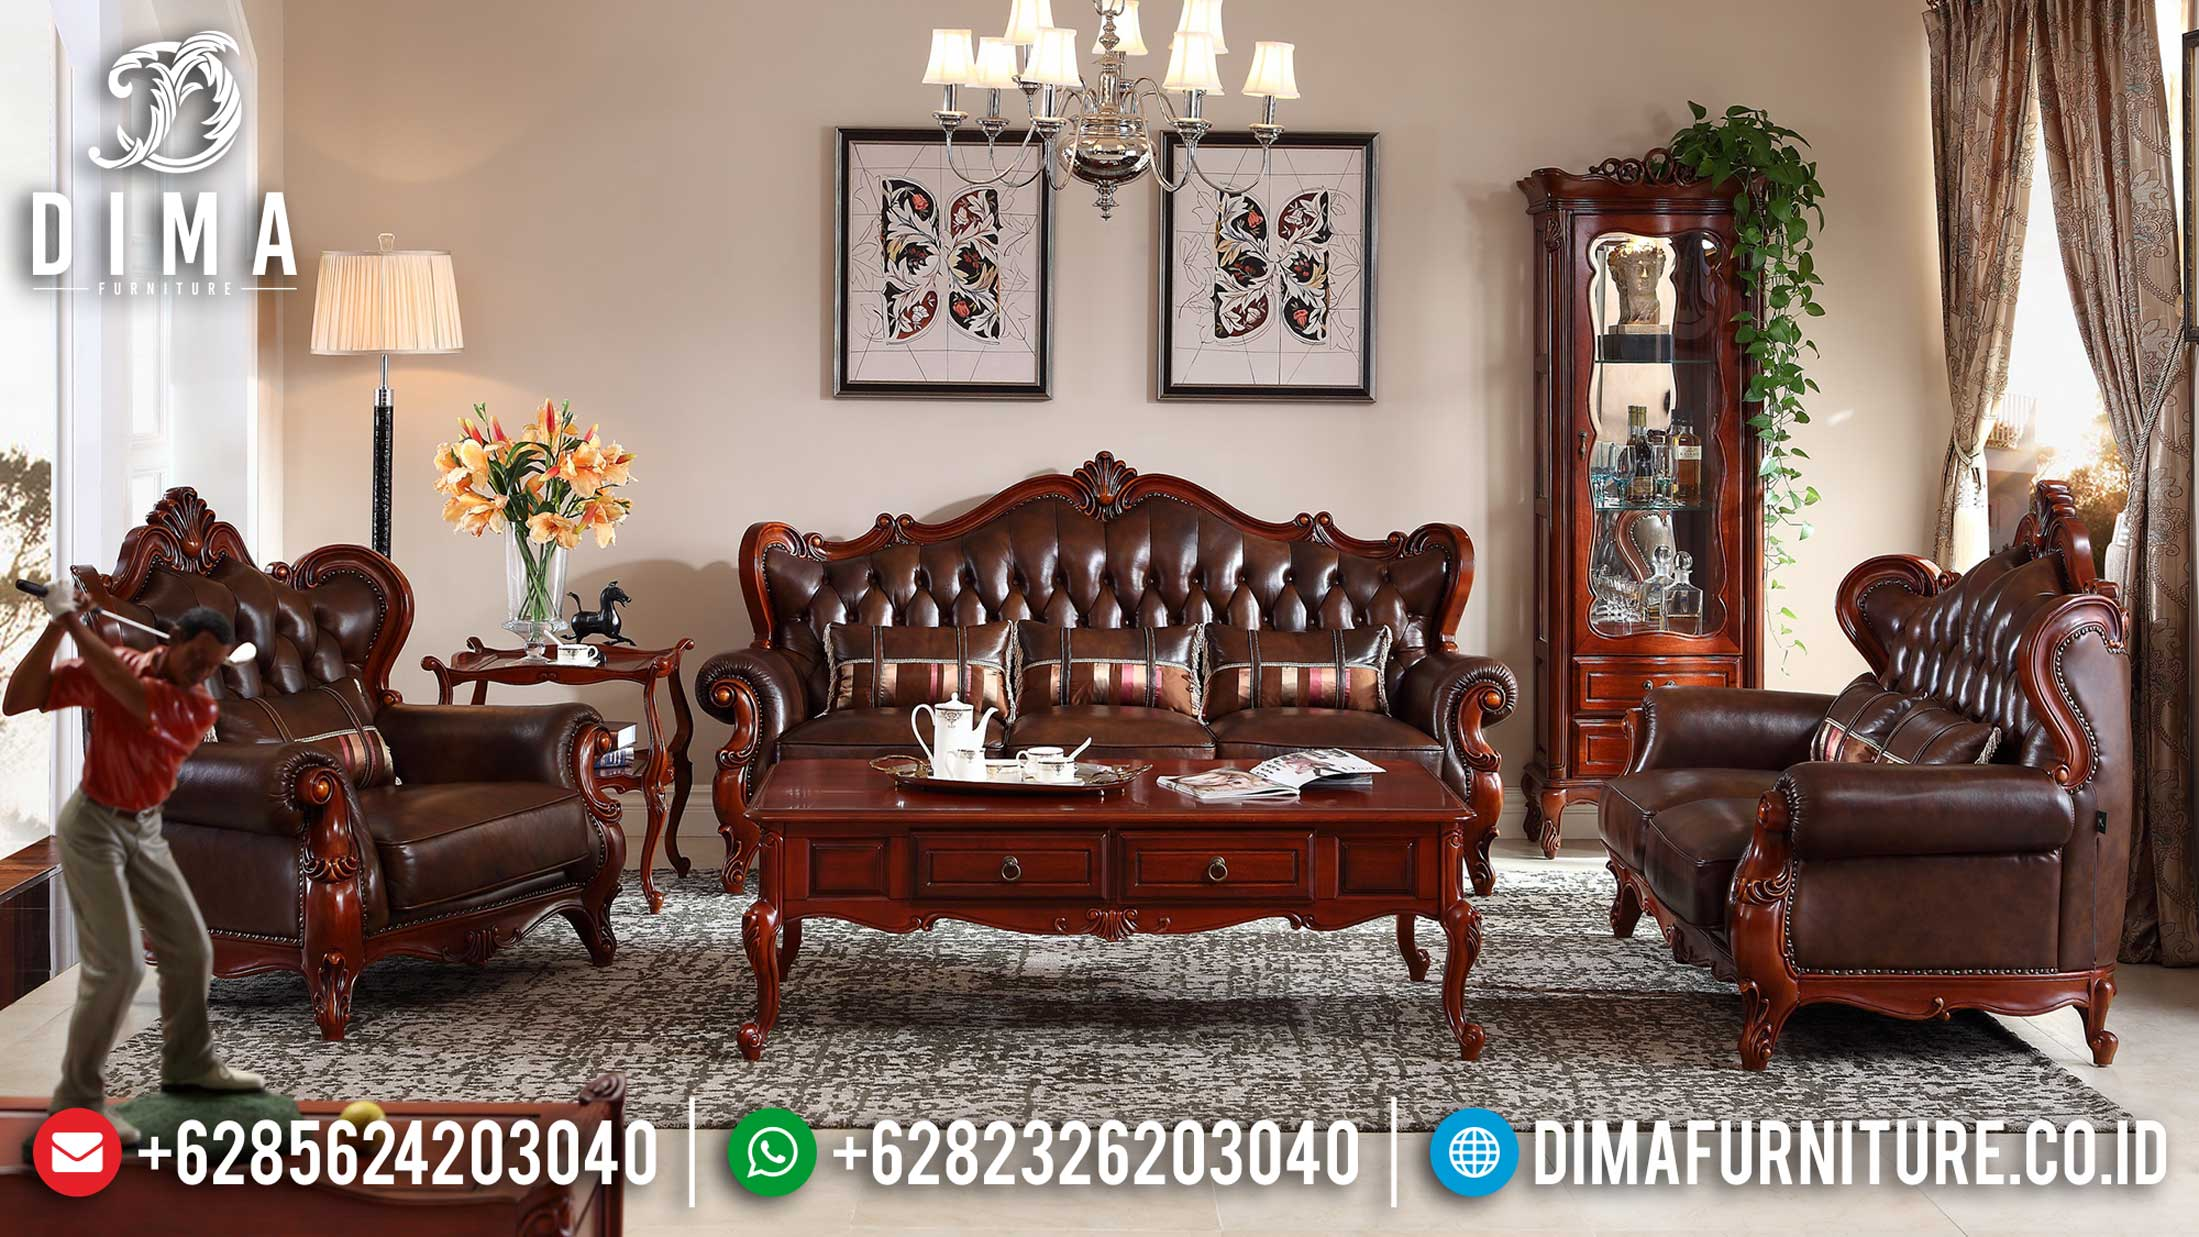 Order Now Sofa Tamu Mewah Jepara Natural Jati Klasik Luxury Living Room Design ST-1014